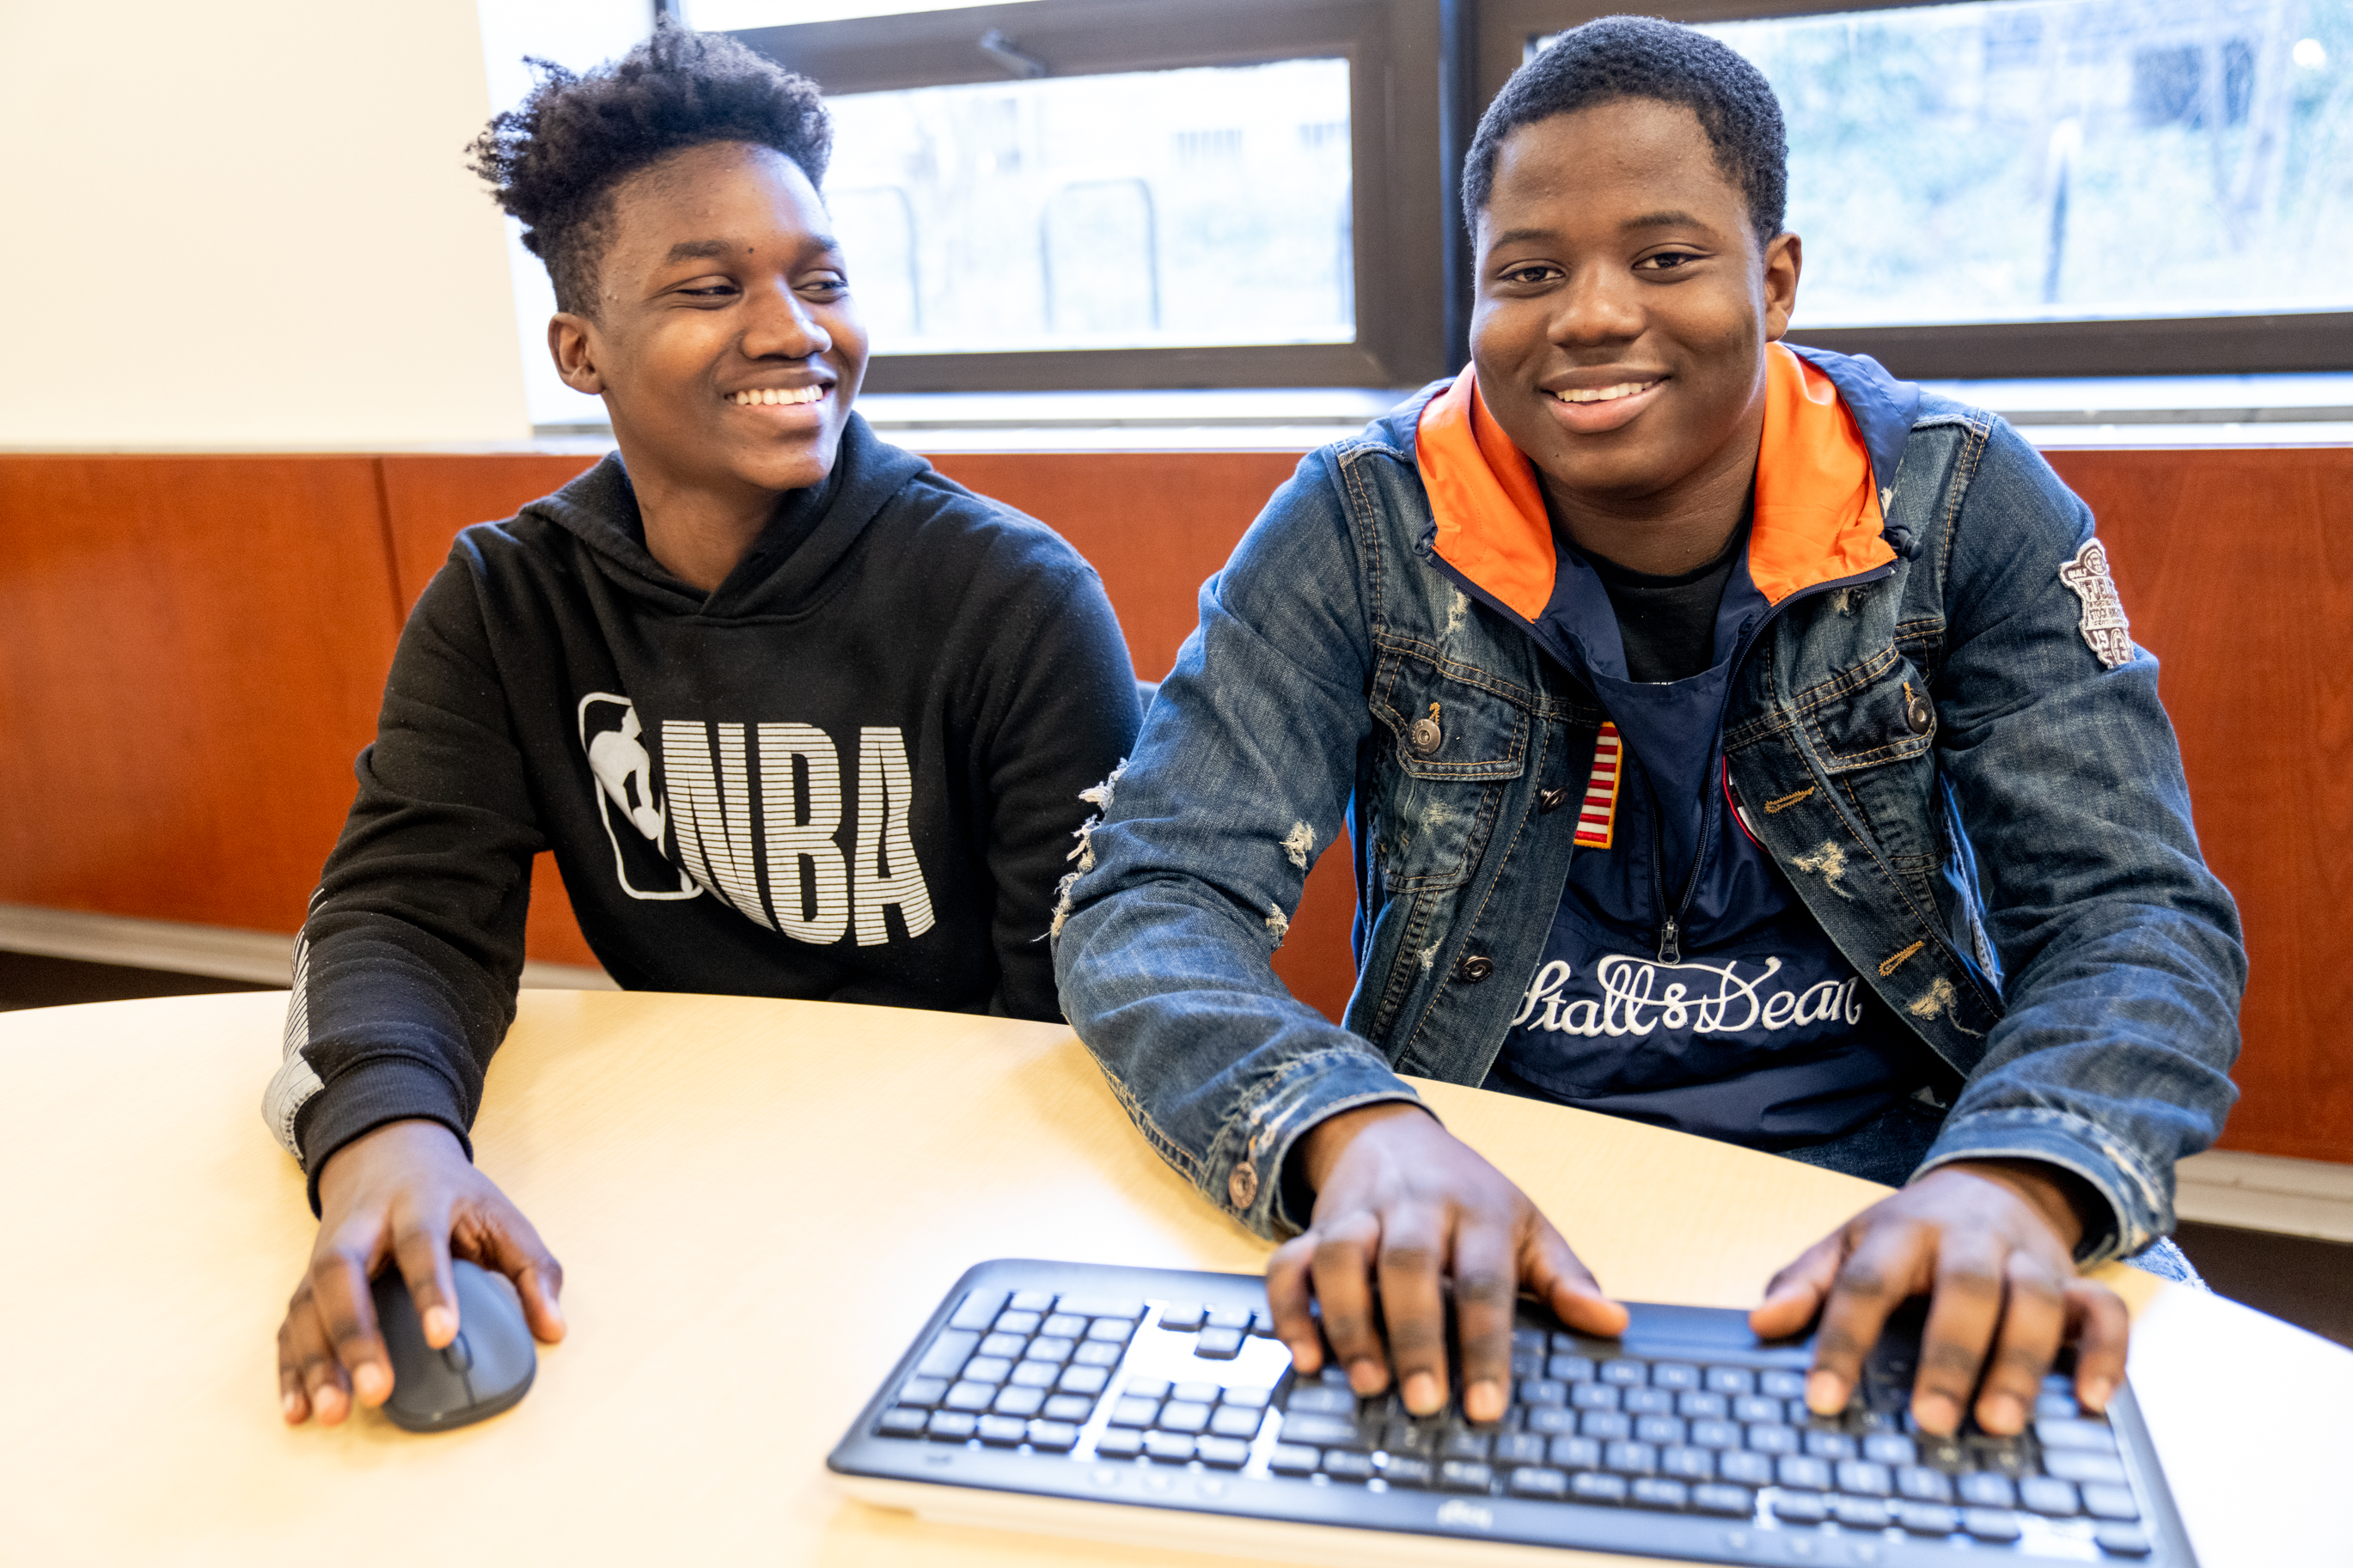 """TeenConnect """"brings jobs to teens and teens to jobs,"""" providing teenagers opportunities to internships at corporations, teaching them professional skills and mentoring them in the workplace."""